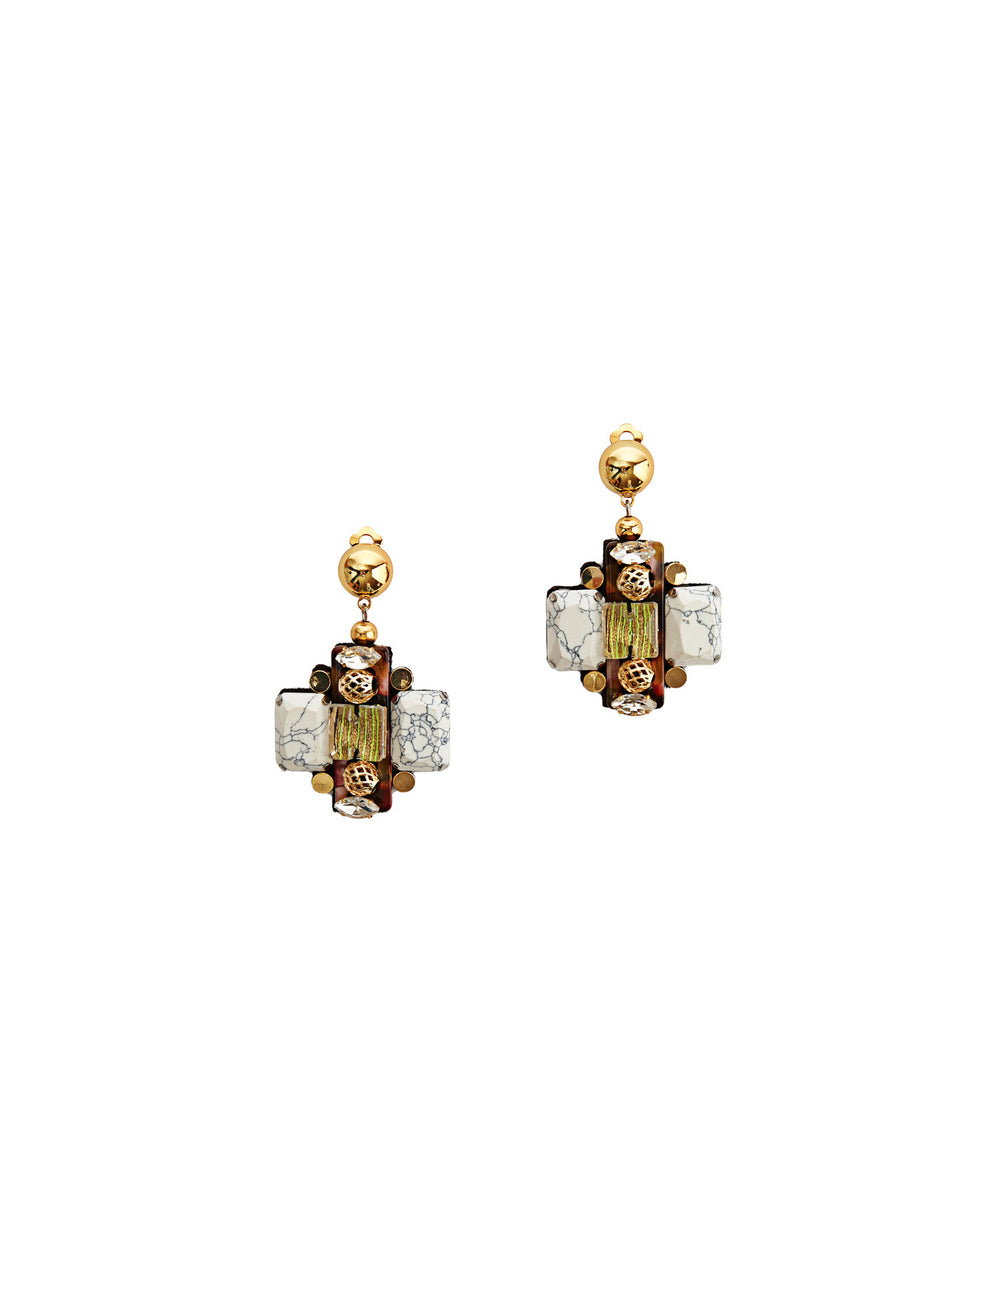 Sam earrings (post)